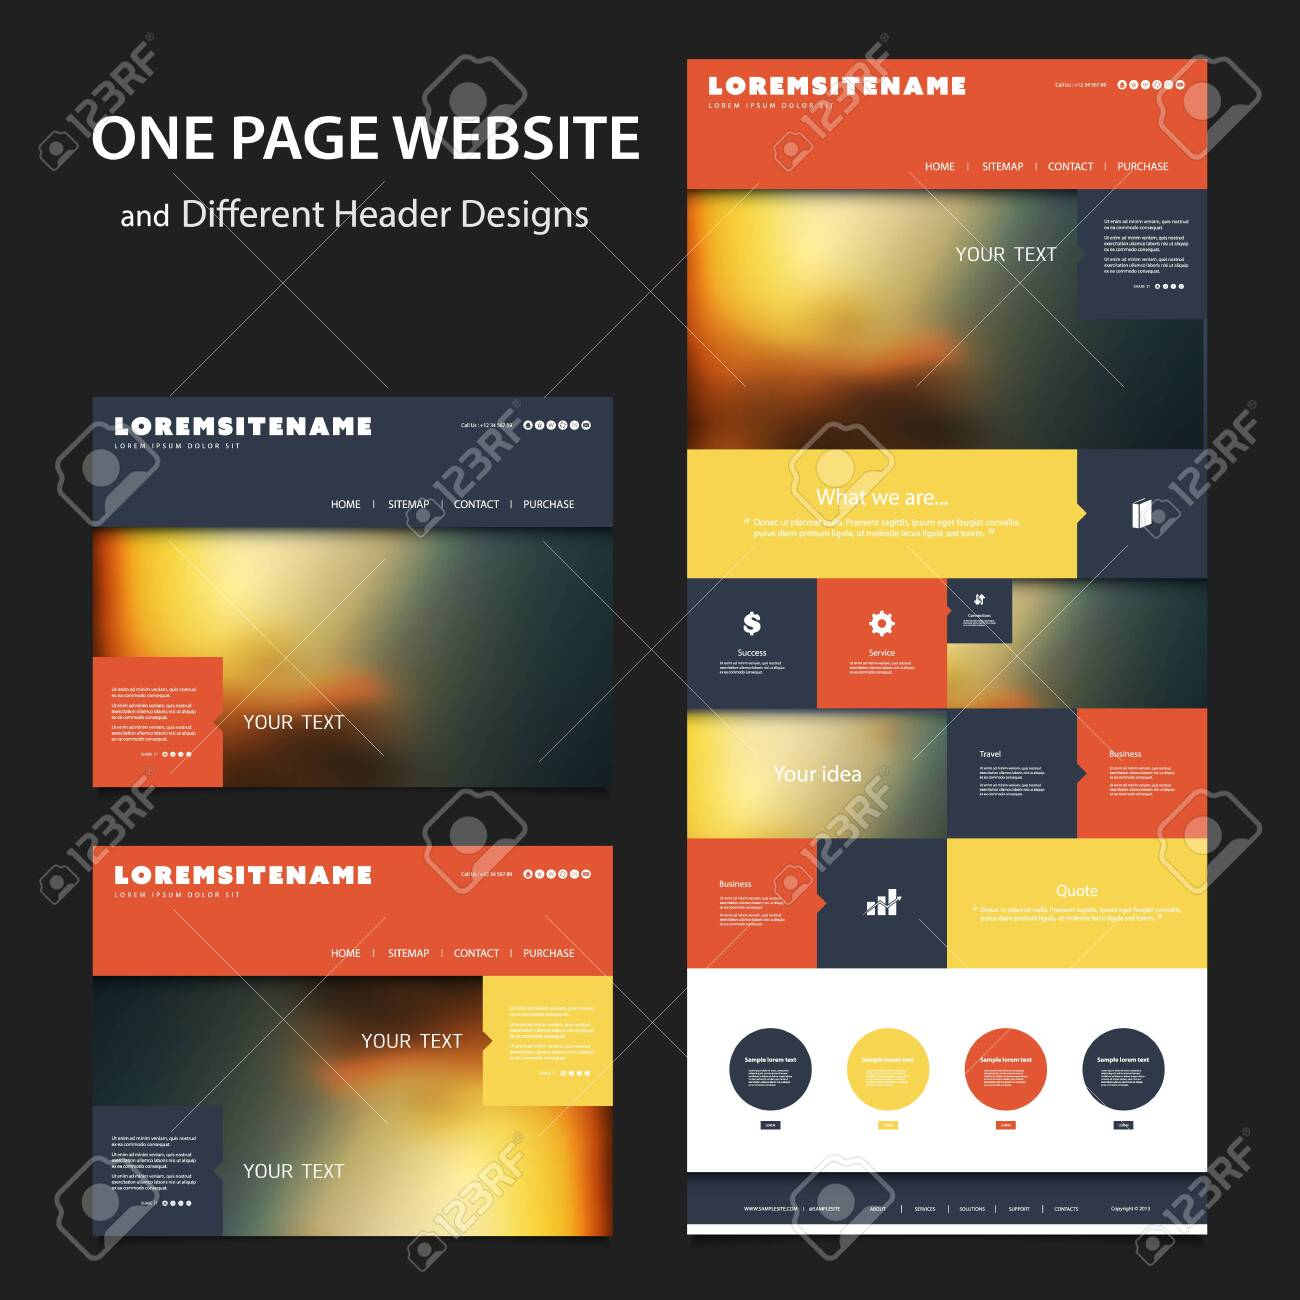 Colorful One Page Website Template - Various Header Designs with Blurred Backgrounds - 131707492